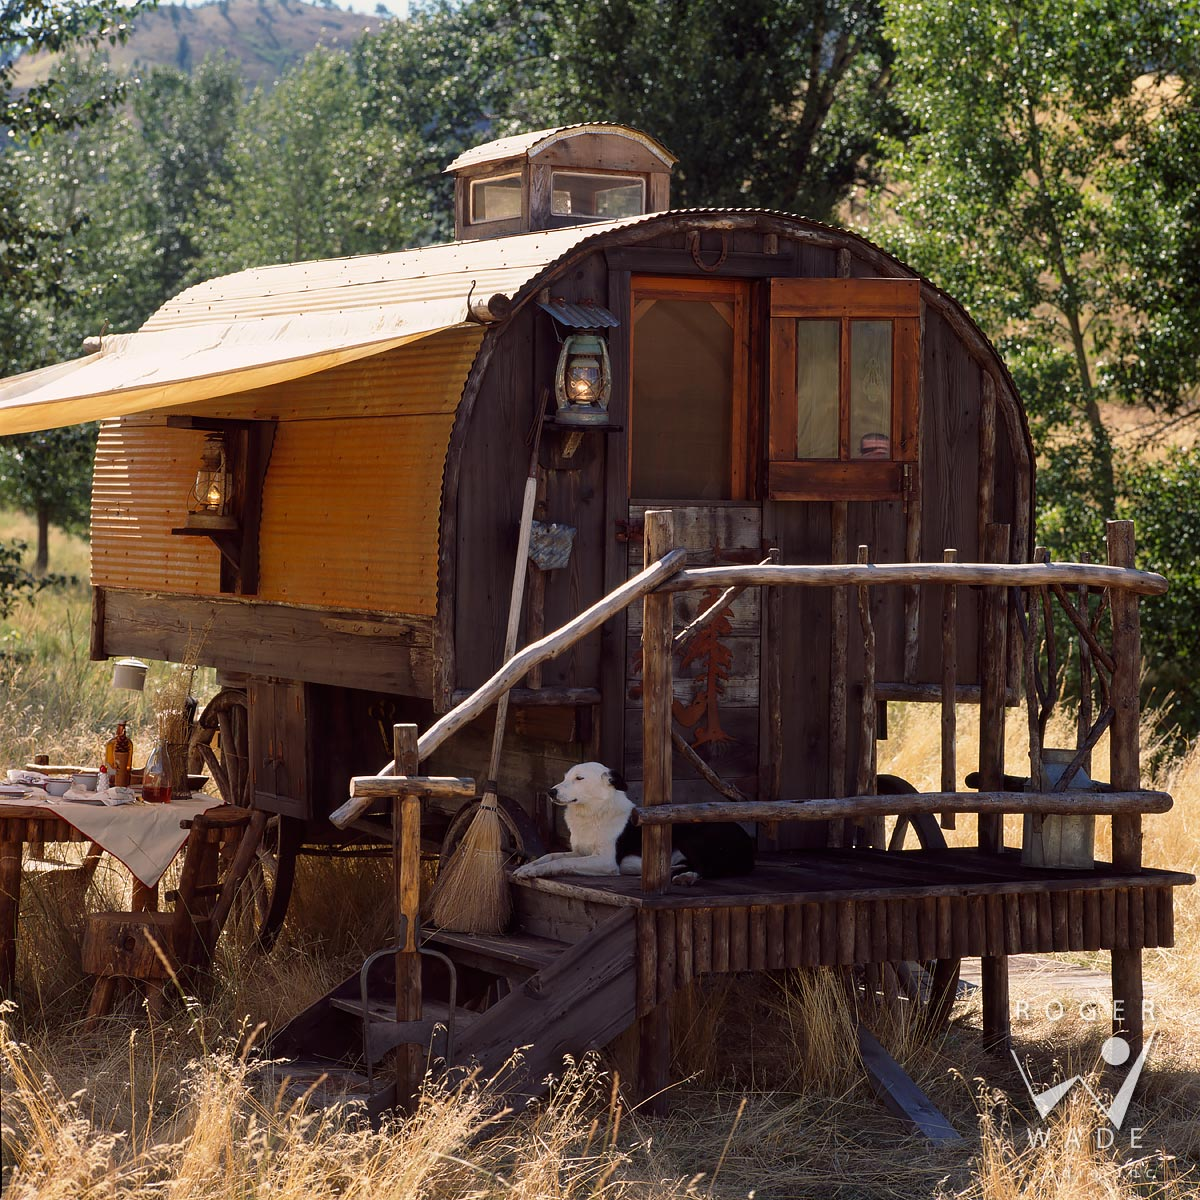 roger wade studio architectural digest photography of rustic sheepherder wagon, big timber, montana, photographed for architectural digest